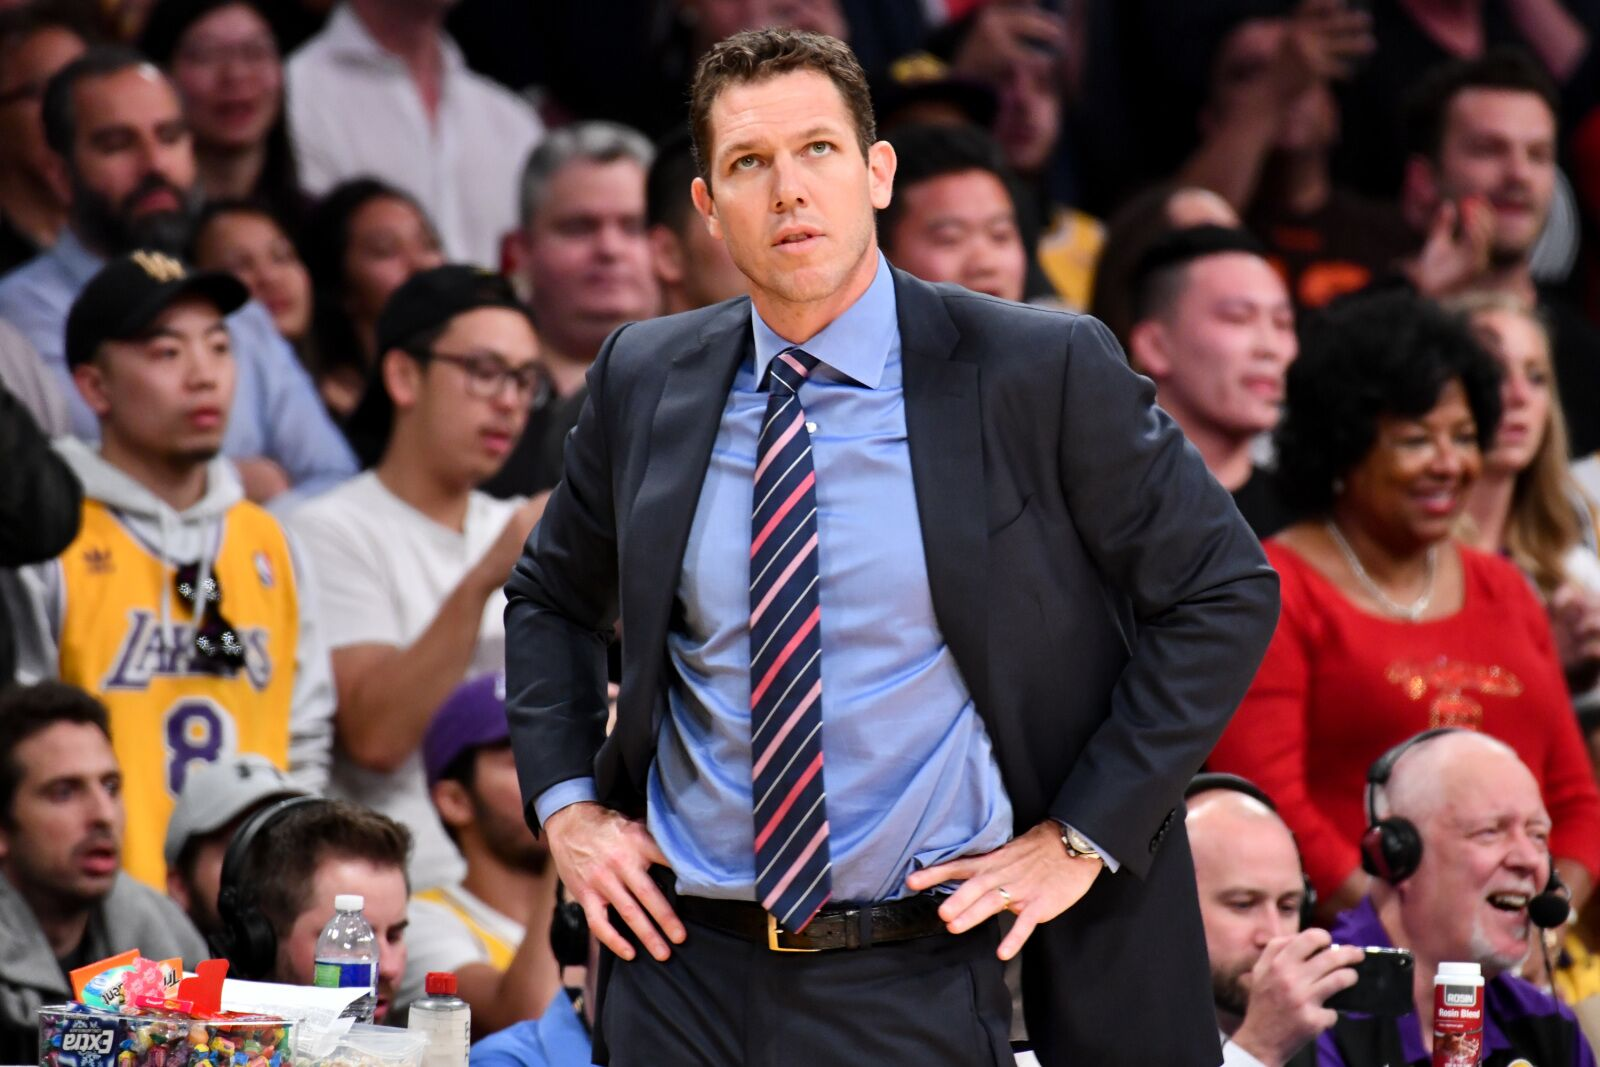 LOS ANGELES, CALIFORNIA - APRIL 09: Luke Walton coaches the last basketball game of the season between the Los Angeles Lakers and the Portland Trail Blazers at Staples Center on April 09, 2019 in Los Angeles, California. (Photo by Allen Berezovsky/Getty Images)